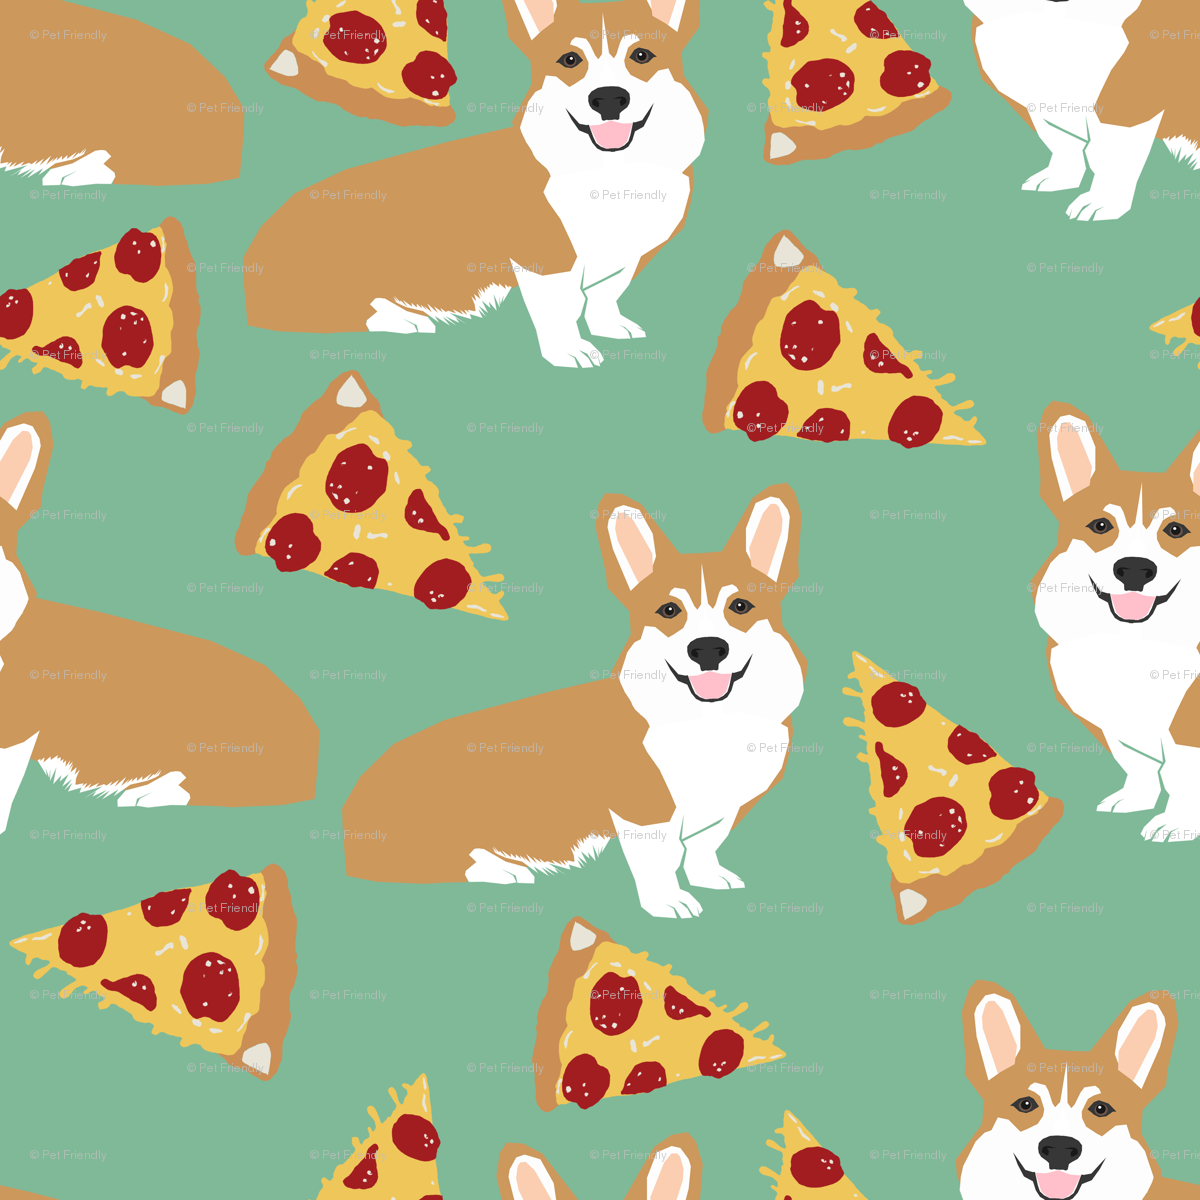 1039a11dfc6c corgi pizza for dog owners corgi owners cute corgi funny corgi fabric  fabric - petfriendly - Spoonflower